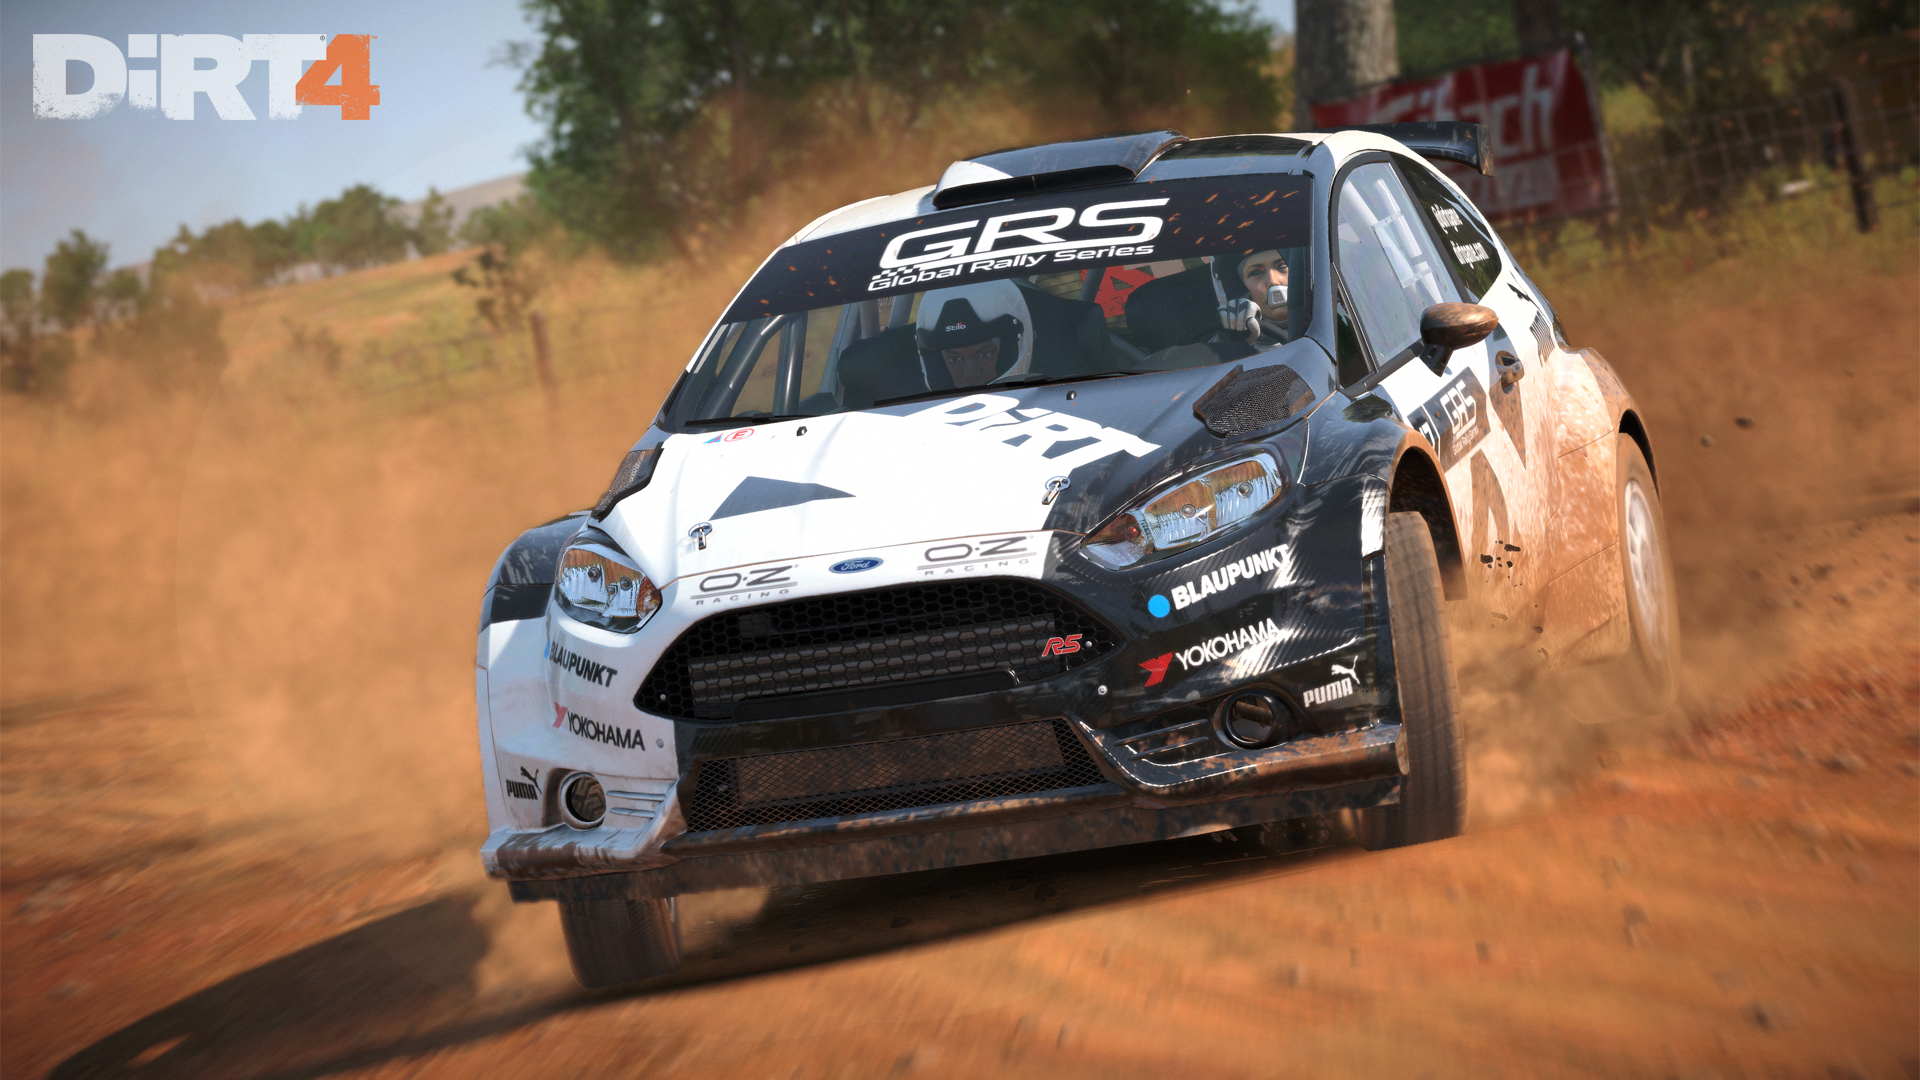 DiRT 4 has Day One Special Edition Announced